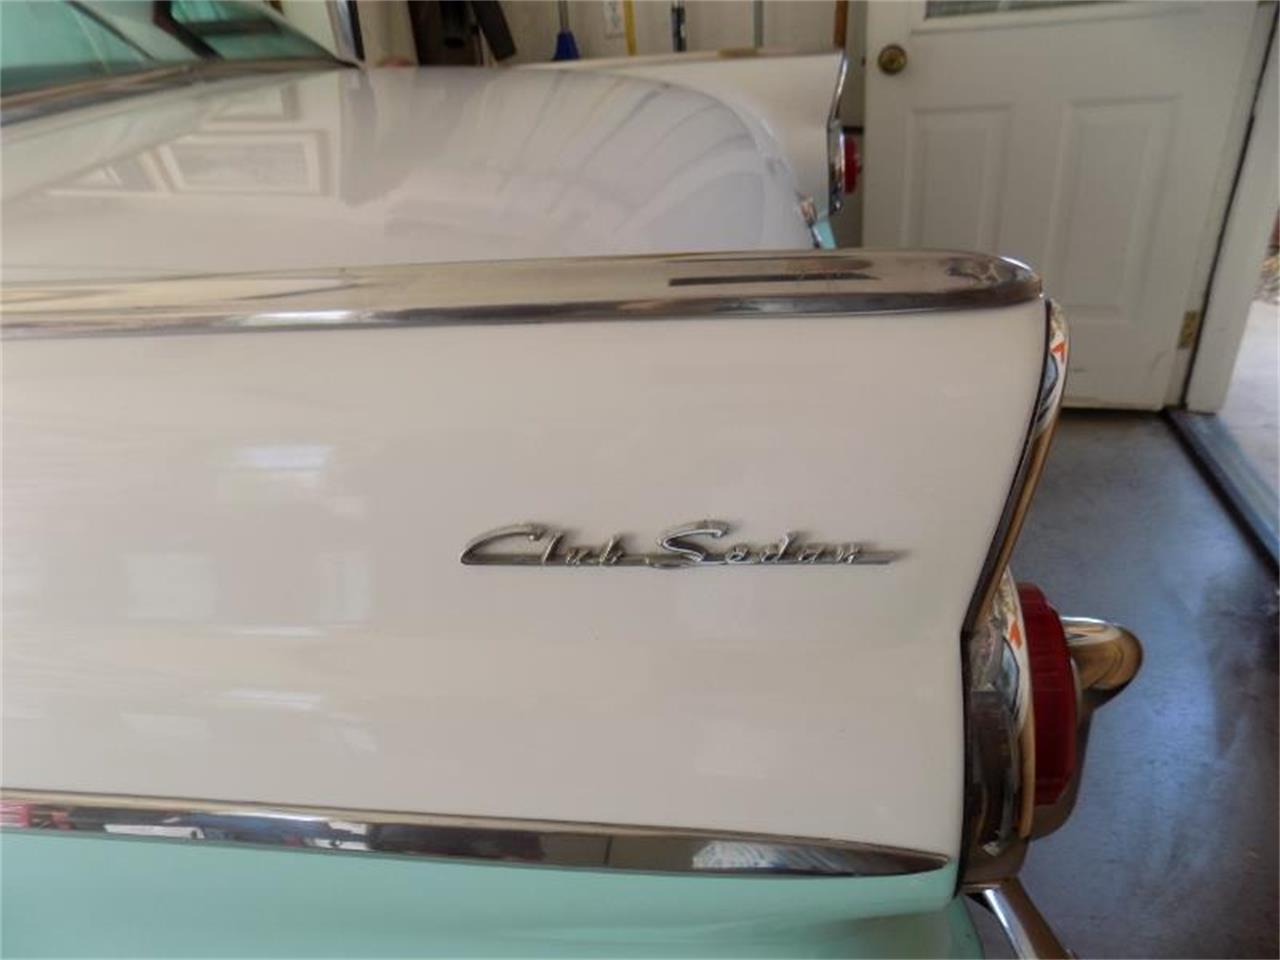 Large Picture of Classic 1955 Ford Fairlane located in California - $21,500.00 Offered by Classic Car Guy - LLHB